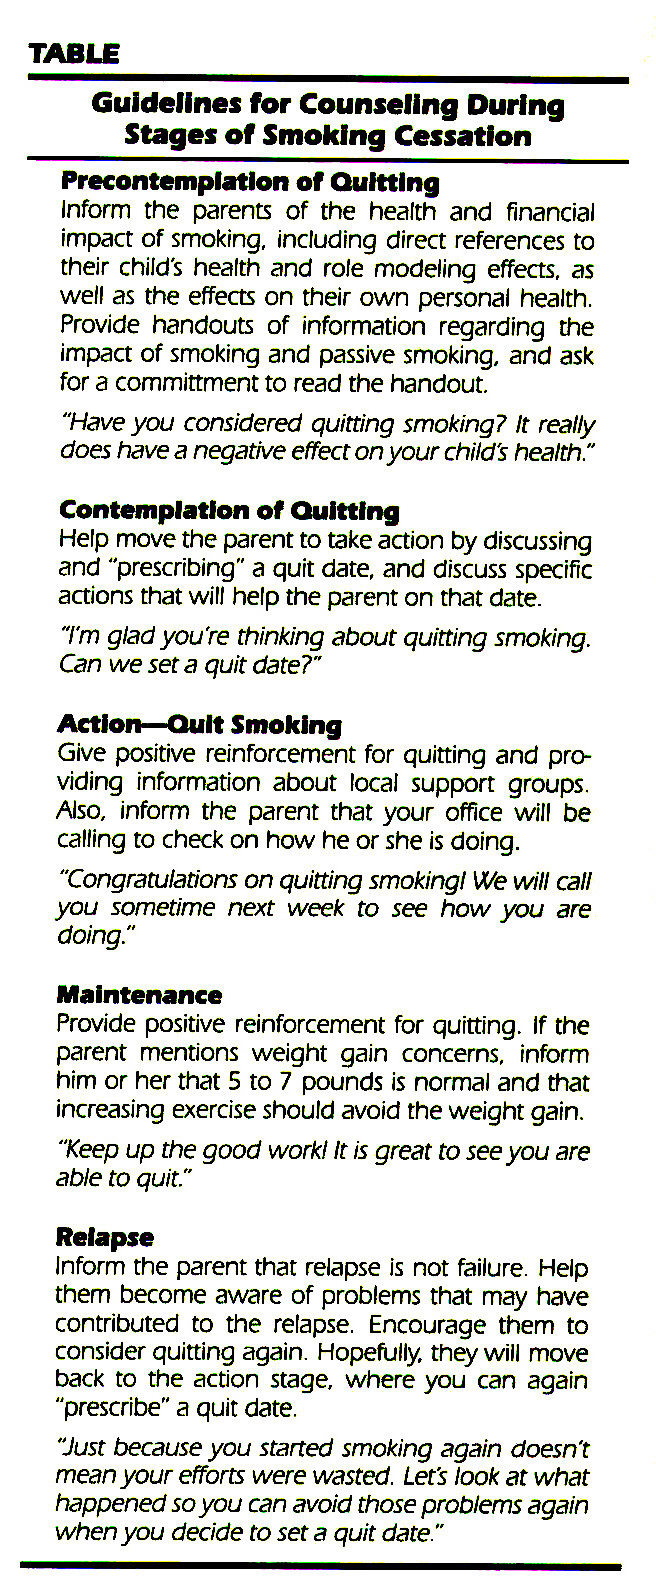 TABLEGuidelines for Counseling During Stages of Smoking Cessation